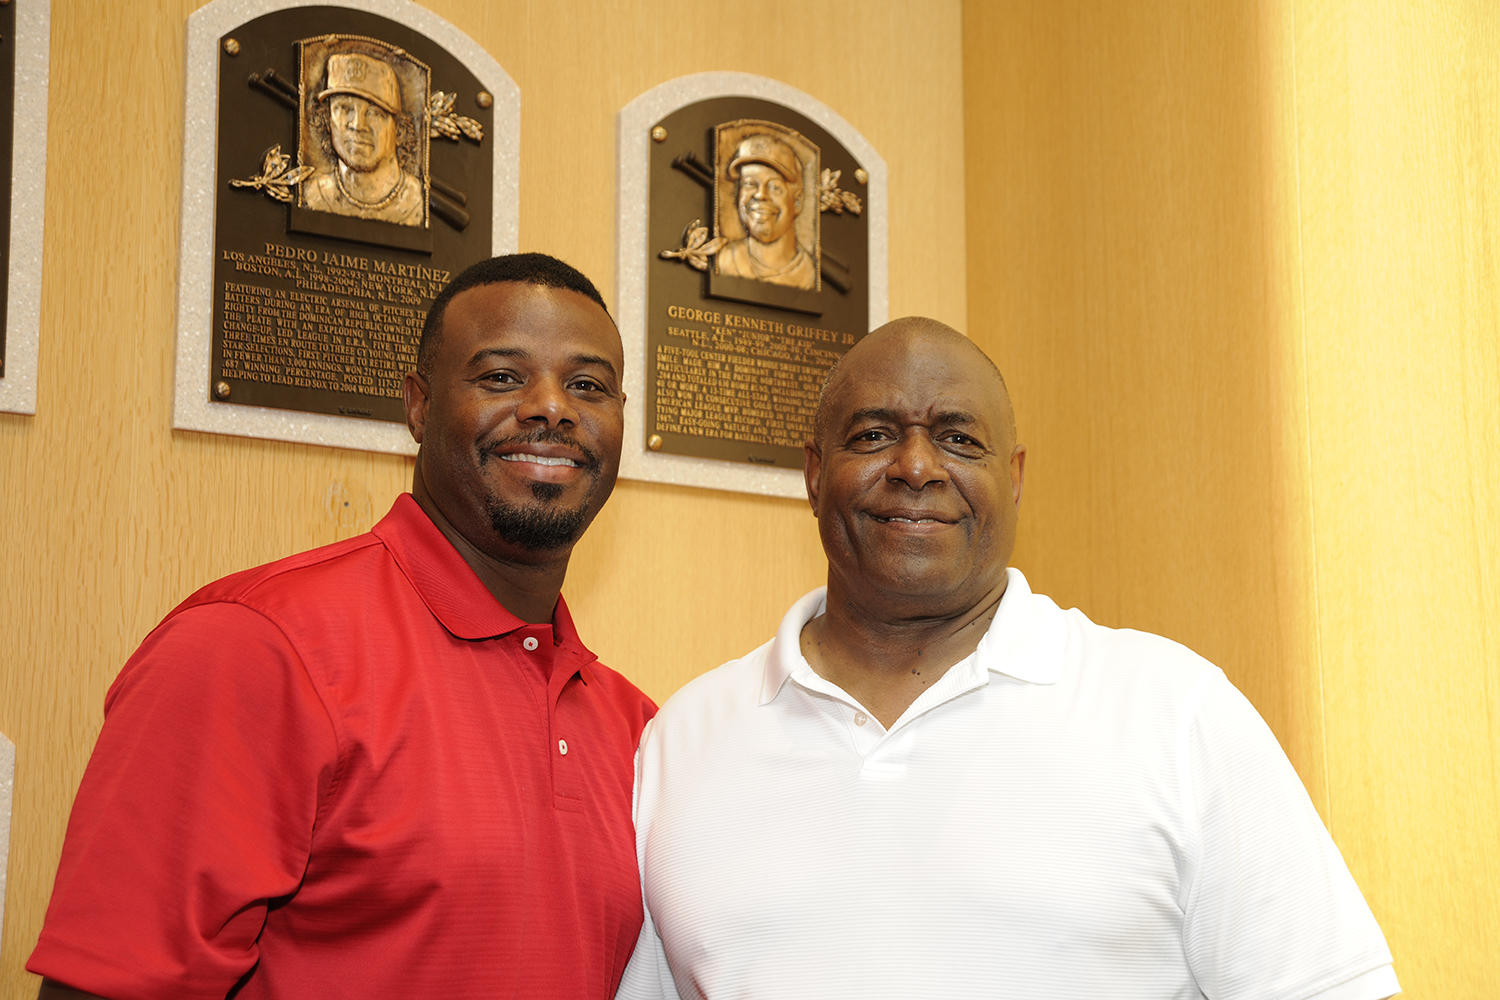 Ken Griffey Jr., a member of the Baseball Hall of Fame's Class of 2016, poses next to his plaque with his father (right). (Larry Brunt / National Baseball Hall of Fame)